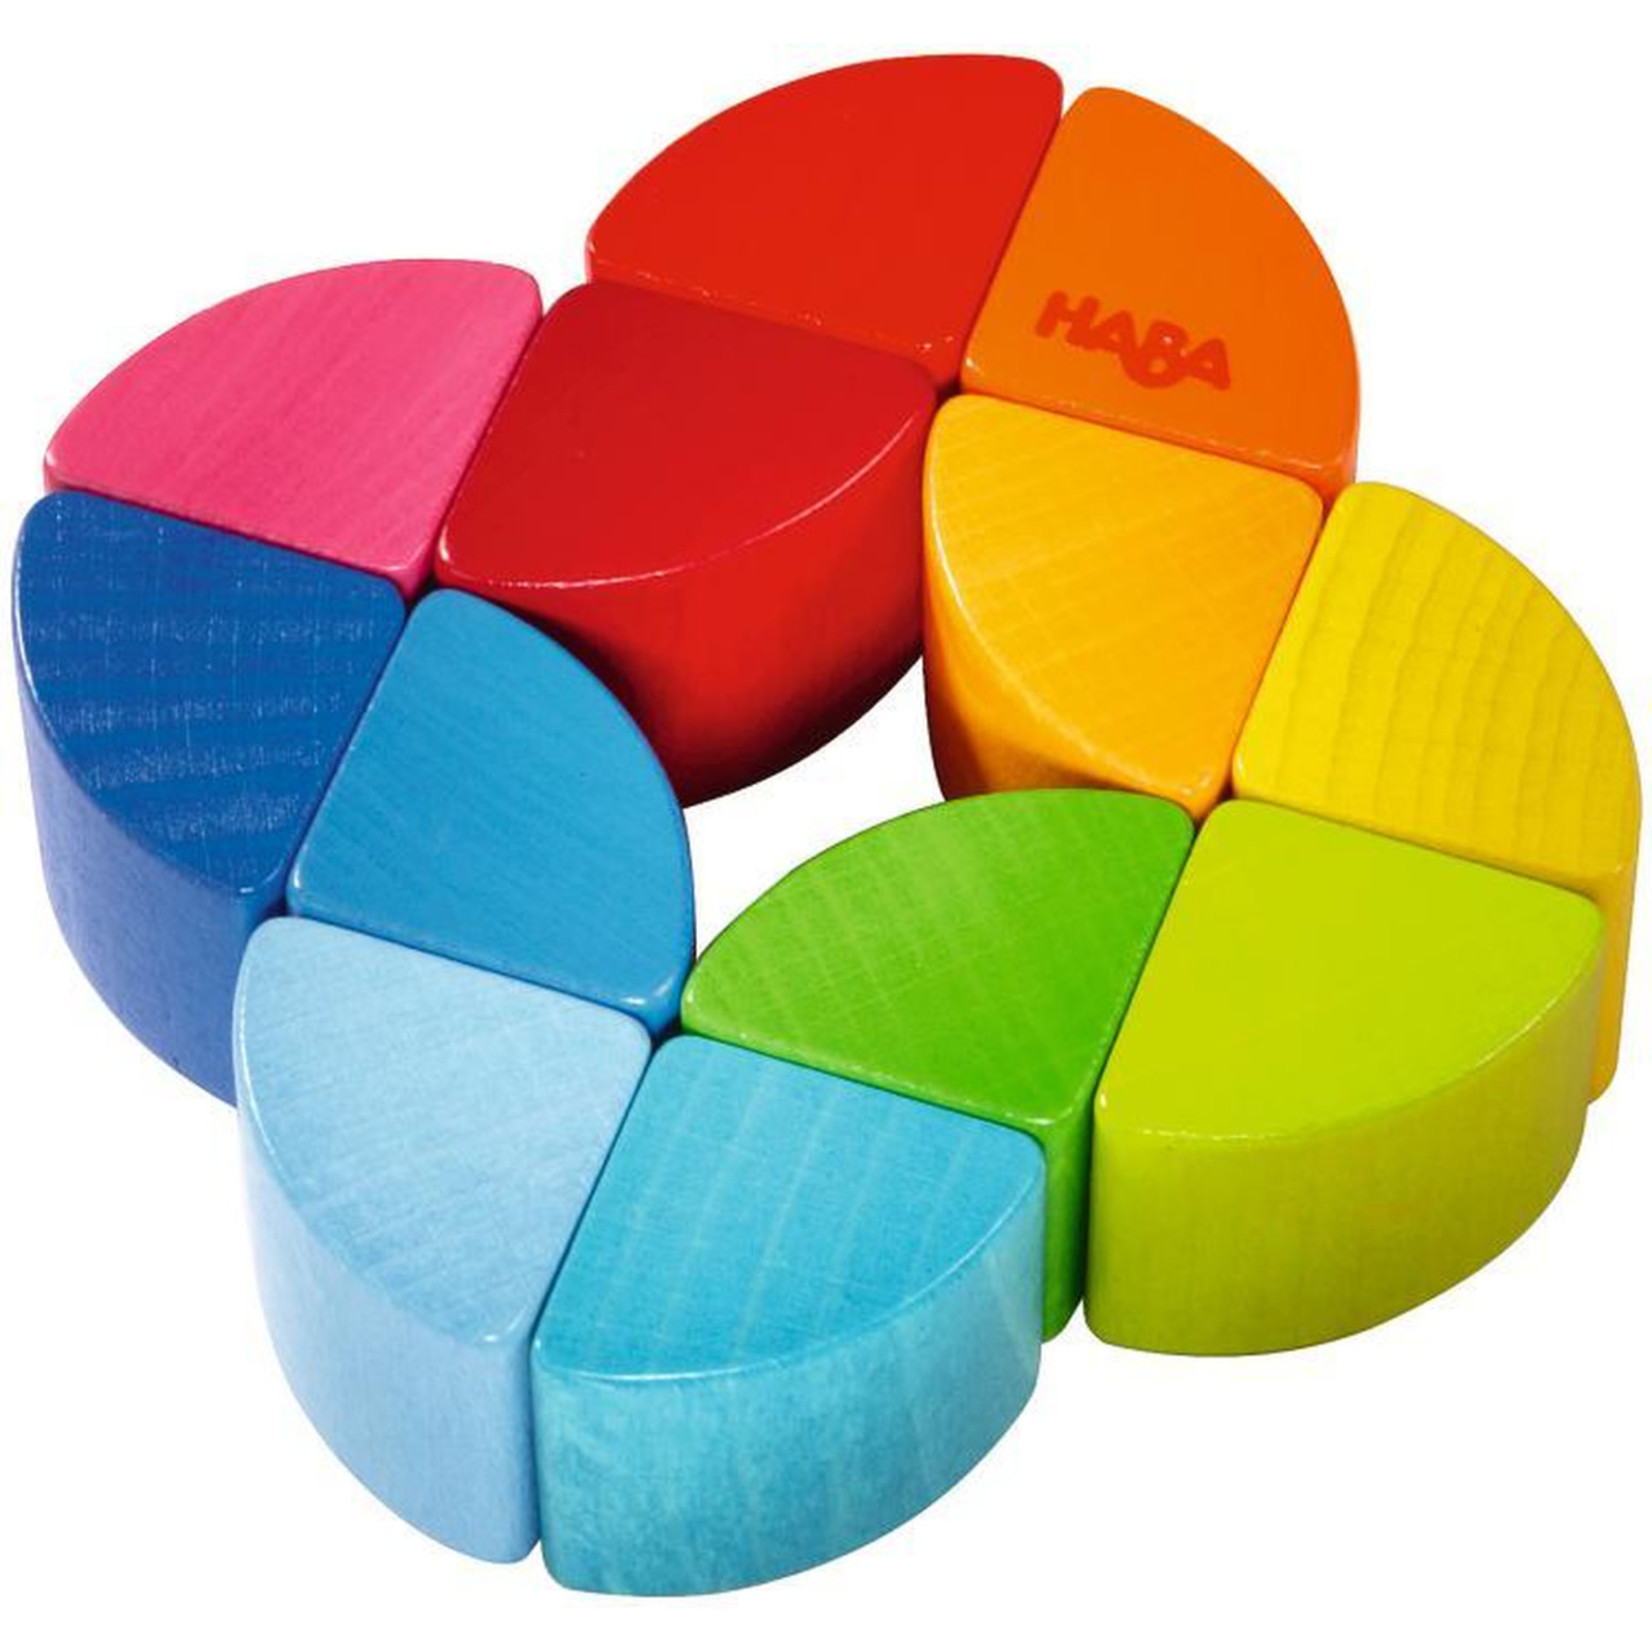 Haba Clutching Toy Rainbow Ring